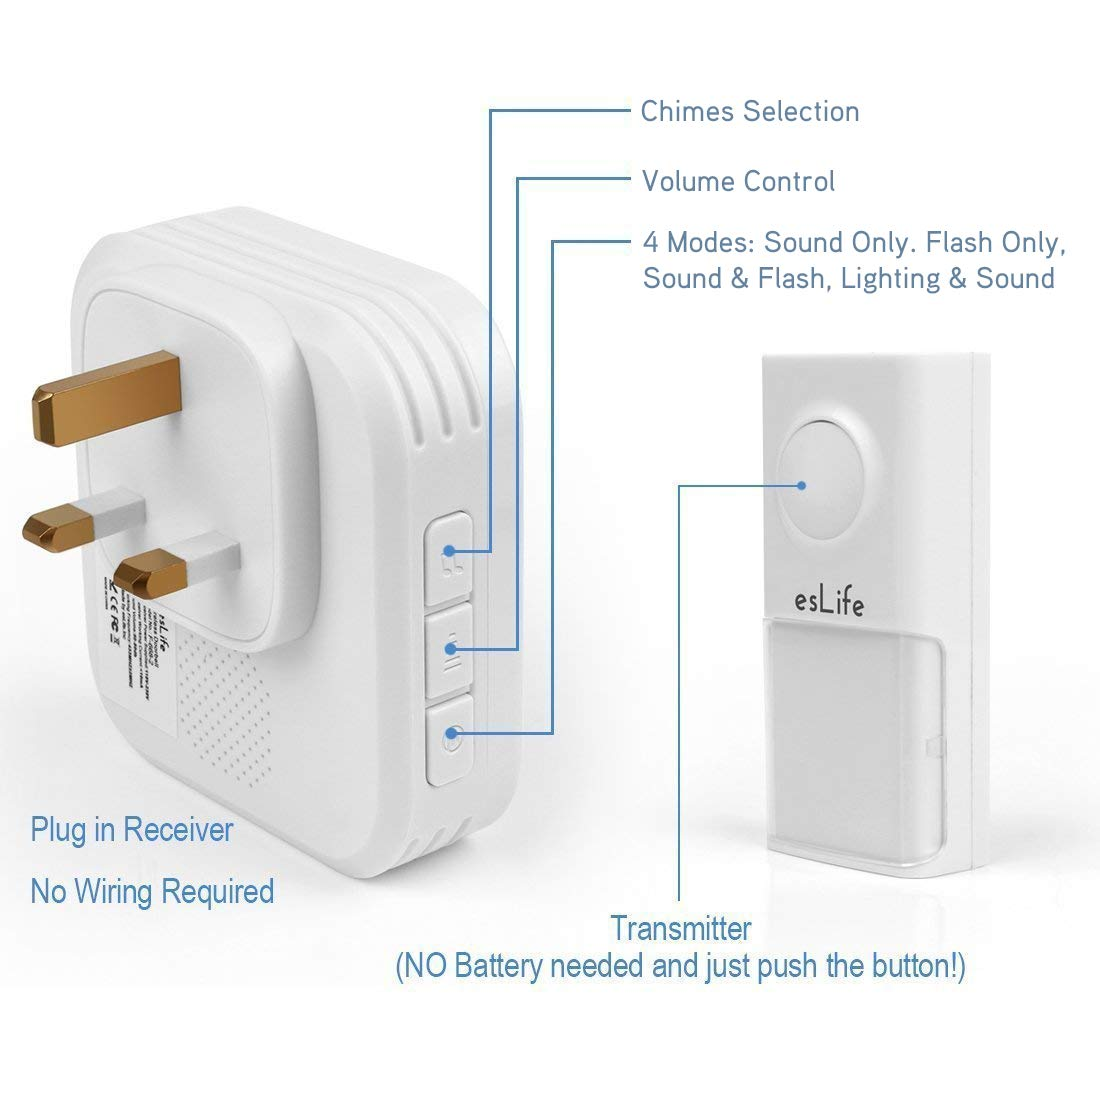 No Battery Required Wireless Doorbell 1 Push Buttonself Generating Using An Electrical Meter To Troubleshoot Wiring Problems Youtube Power With 2 Wall Plug In Receivers Ip55 Waterproof Door Bell 58 Chimes Kit